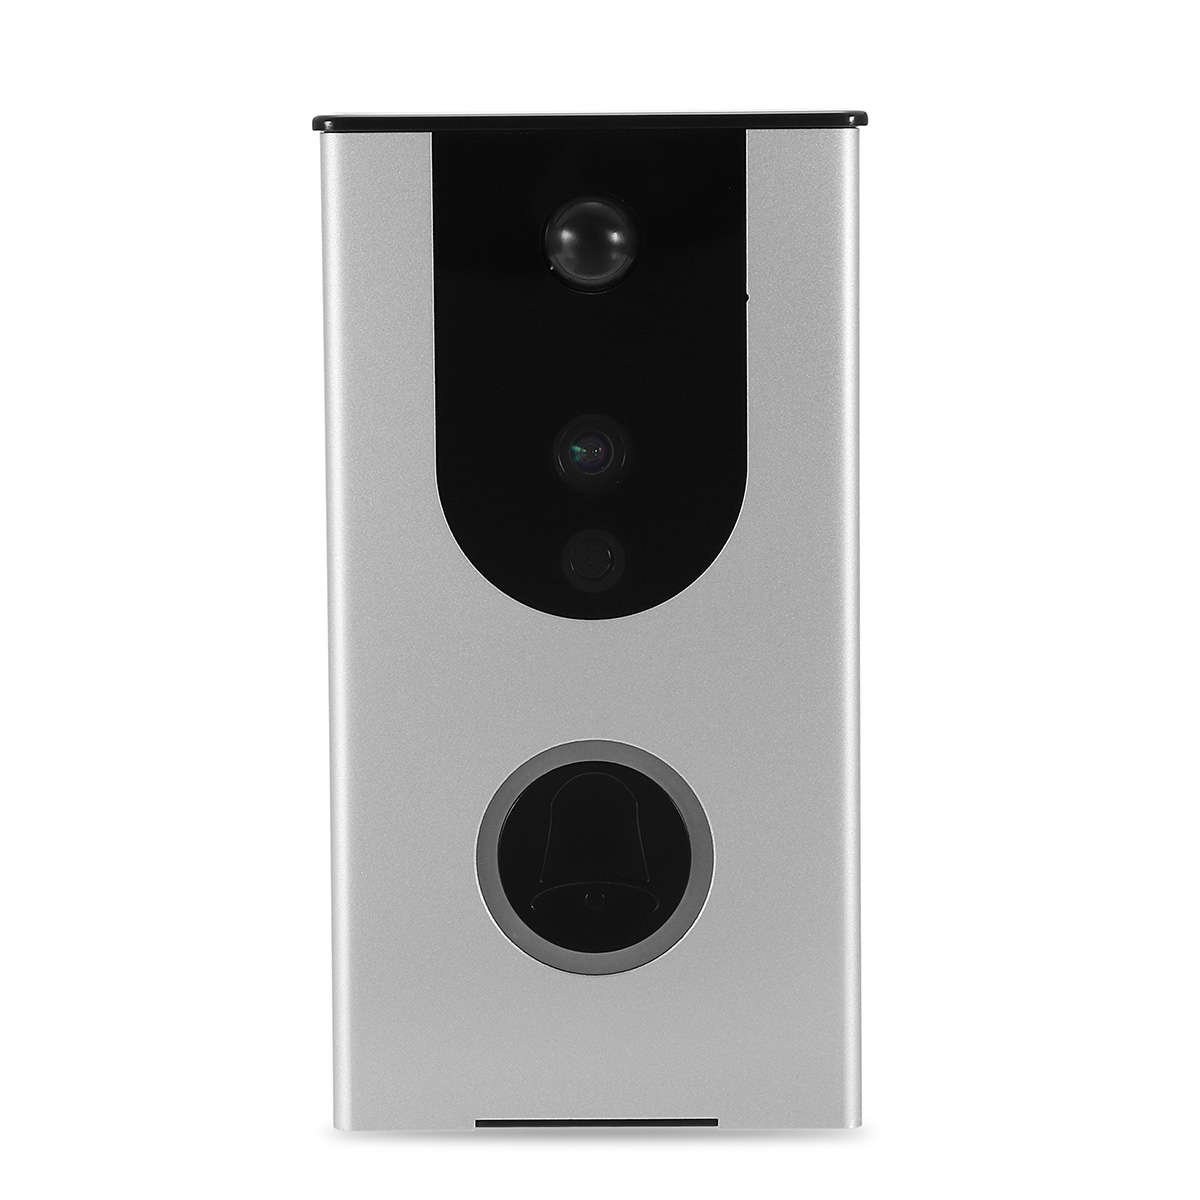 wireless wifi doorbell home security monitor phone. Black Bedroom Furniture Sets. Home Design Ideas